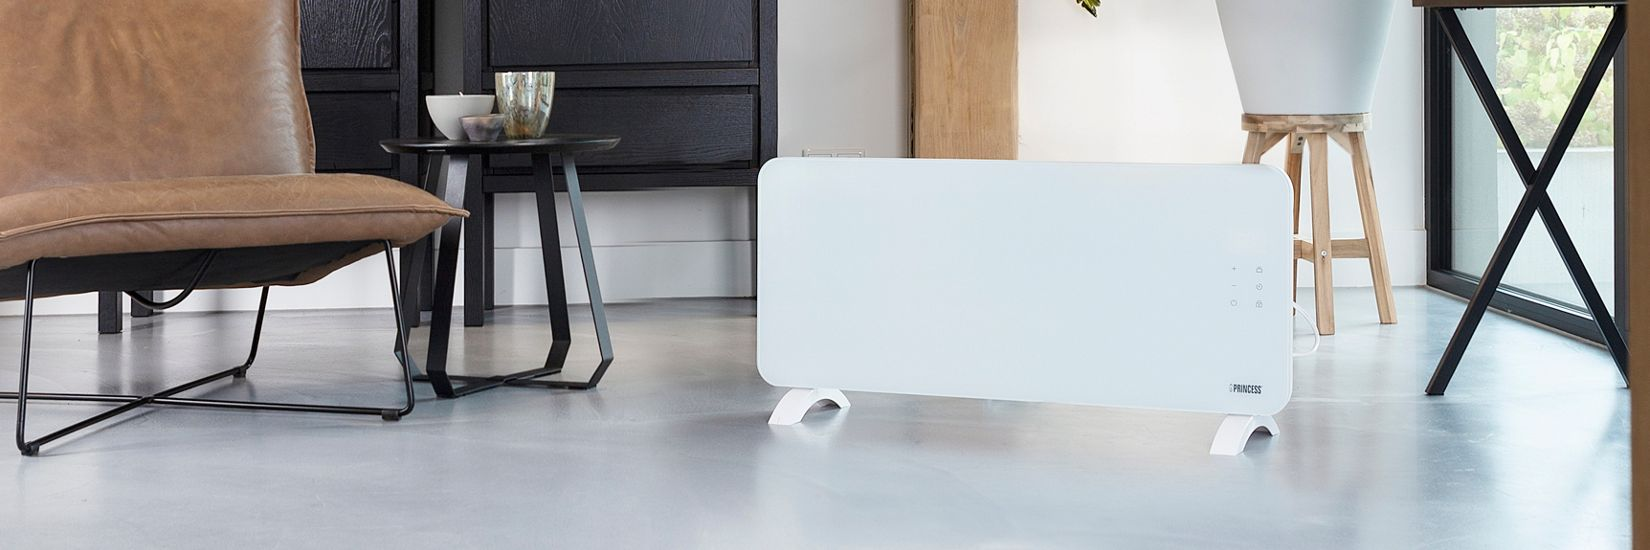 Portable Heaters <br> Keep warm this winter